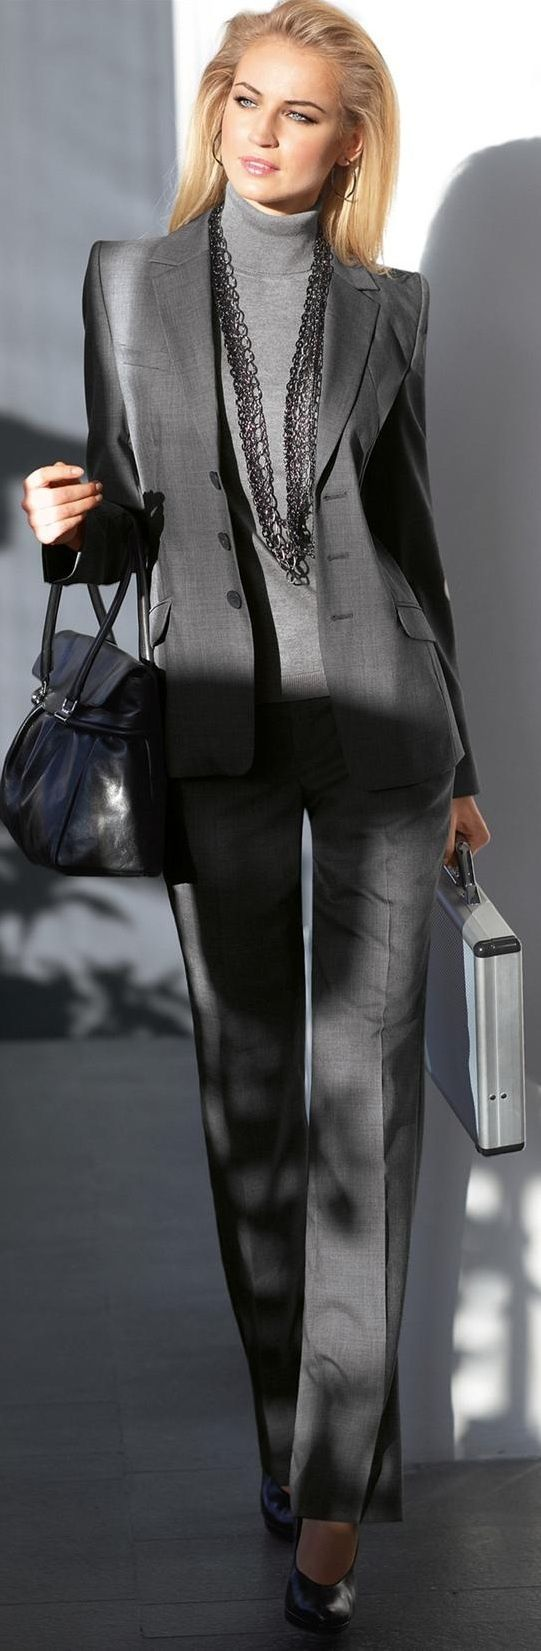 elegant grey office outfit with turtleneck cashmere pullover... Aldo Substitute all black w long necklace